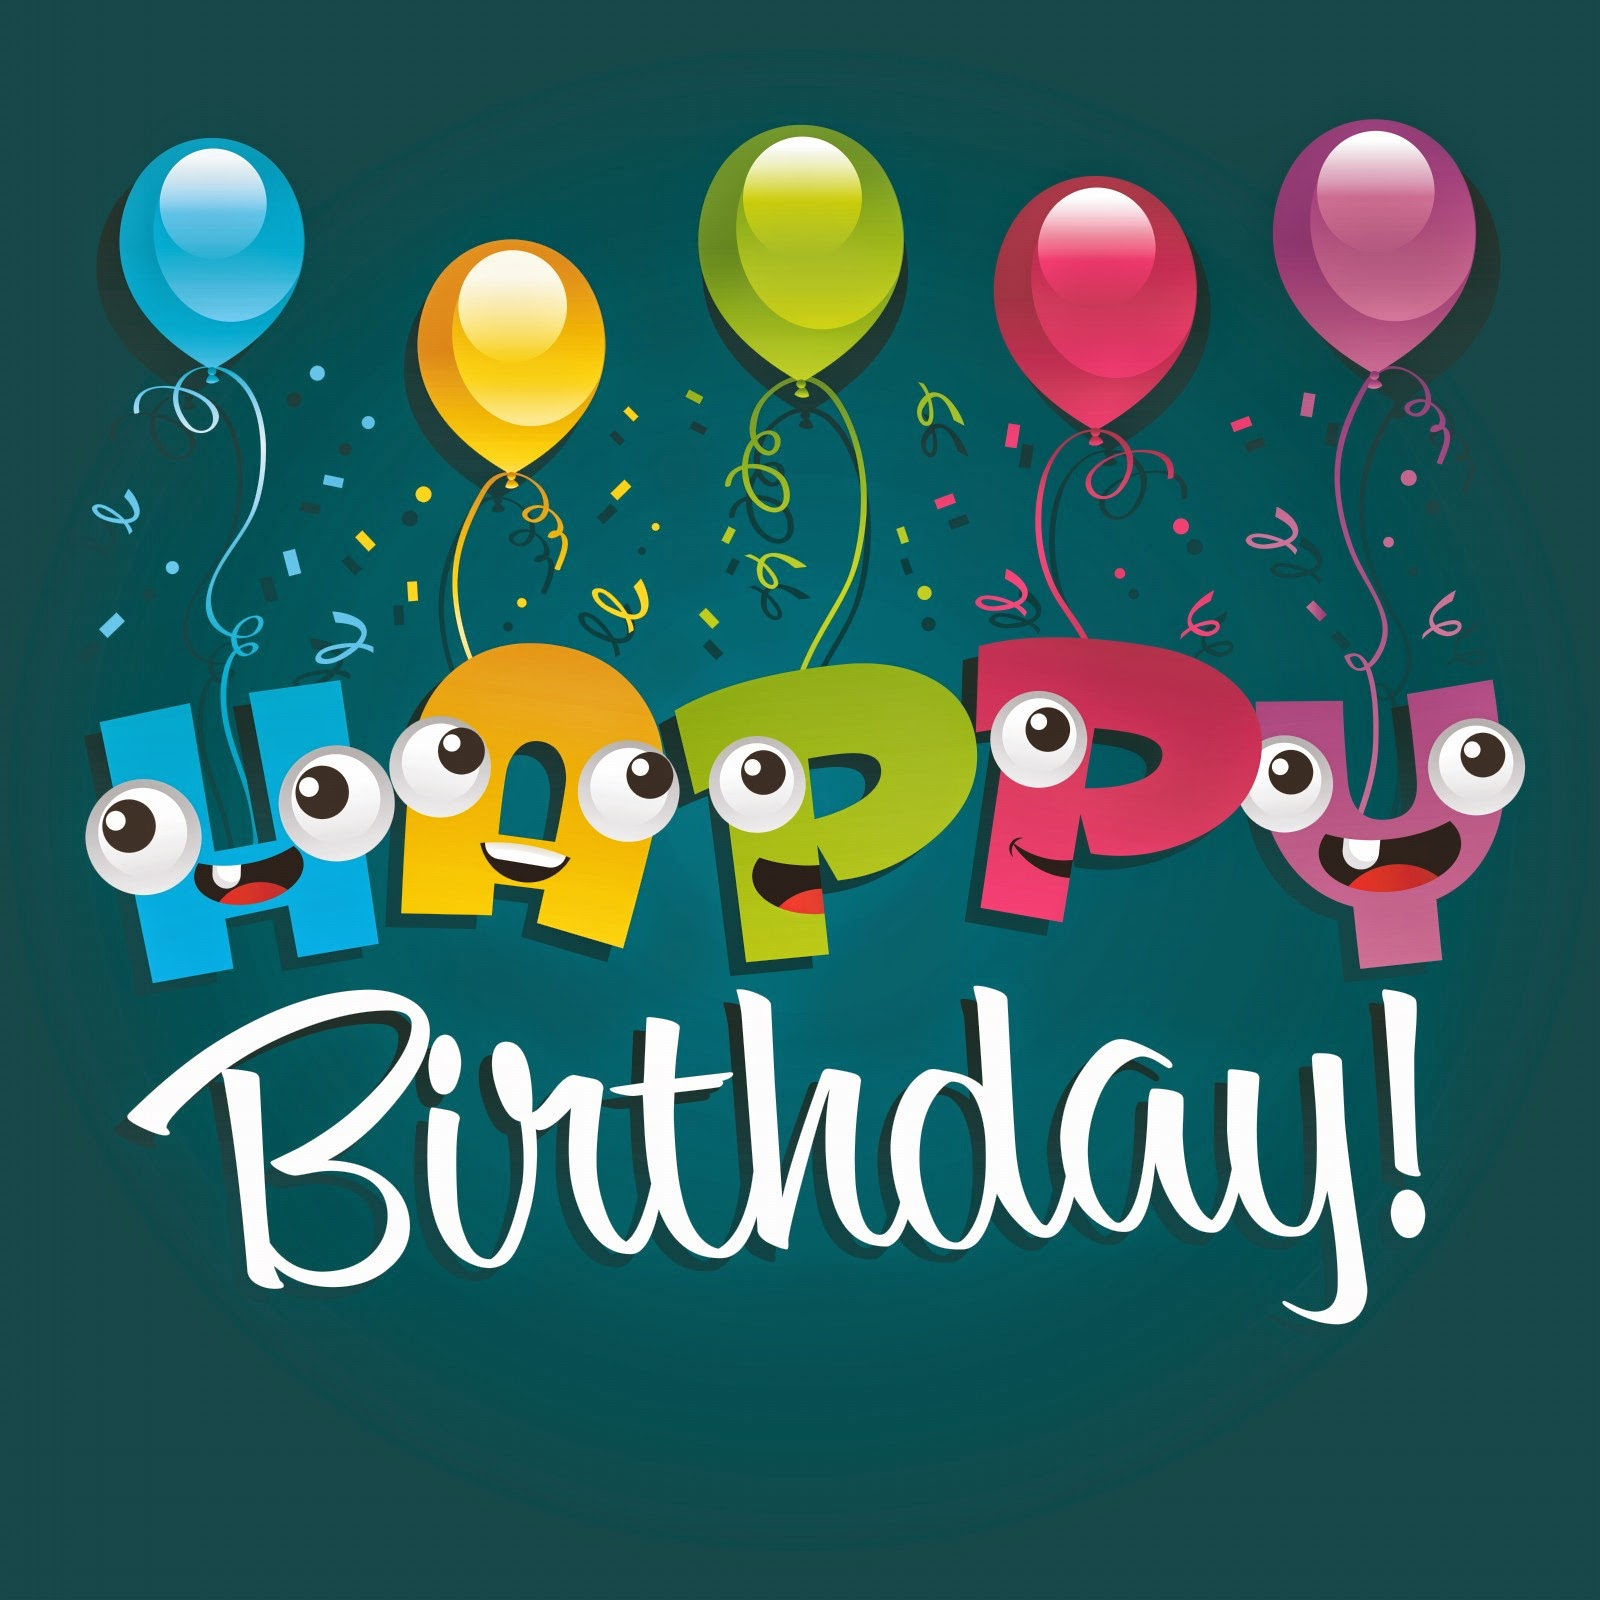 Online Happy Birthday Cards gangcraftnet – Online Birthday Cards